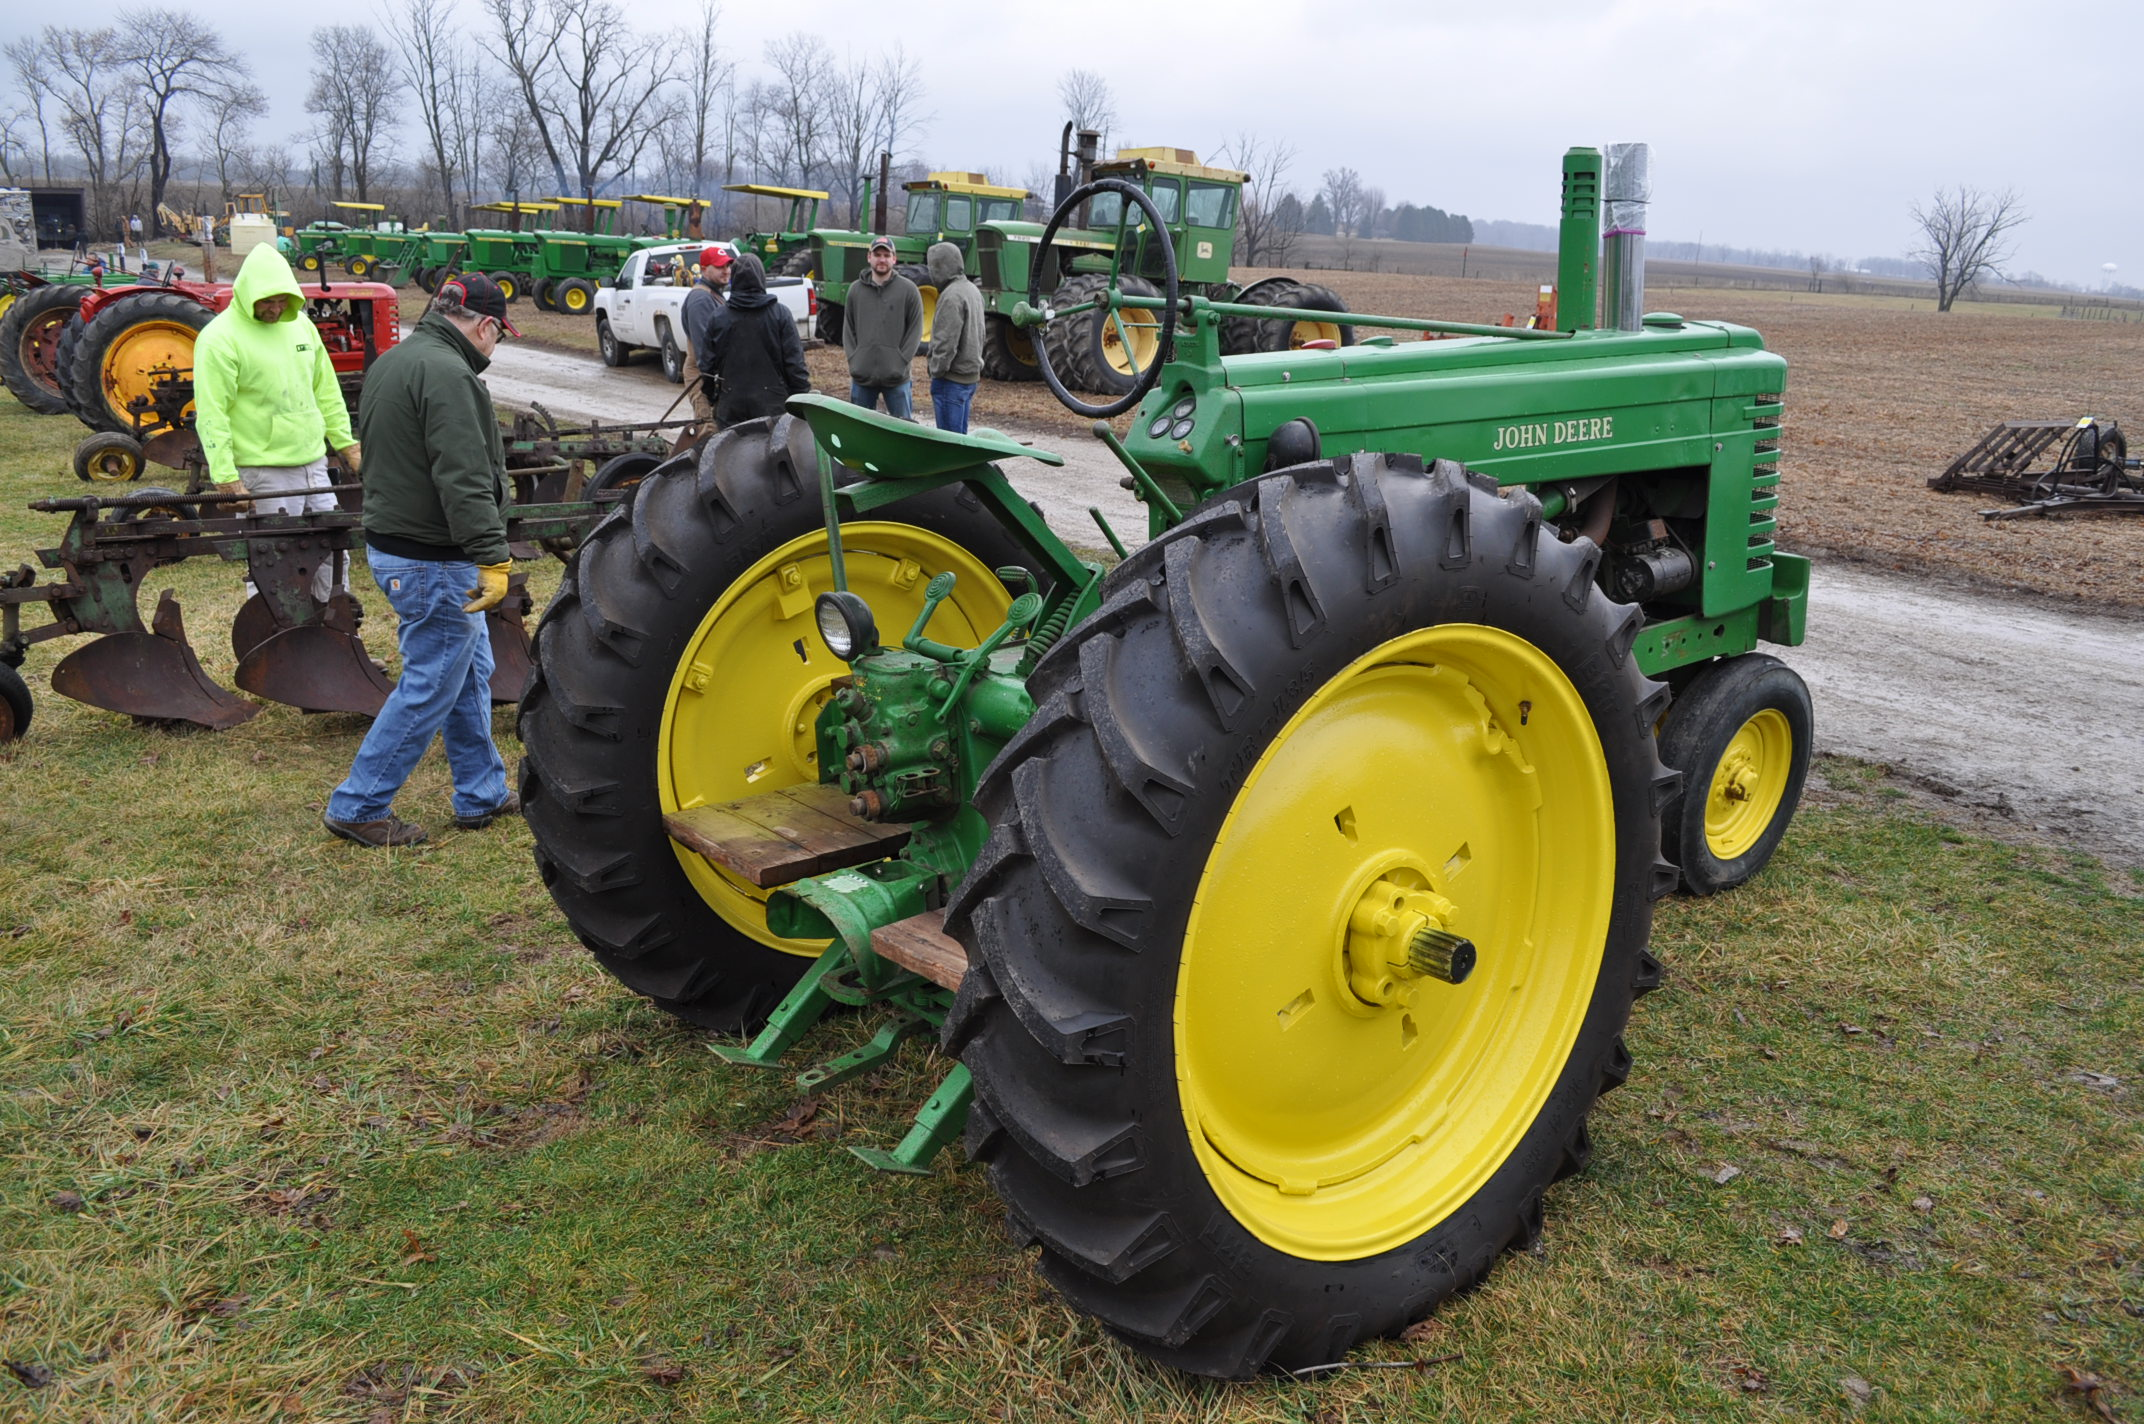 1942 John Deere Styled A, New 12.4-38 rear tires, narrow front, 540 pto - Image 3 of 15